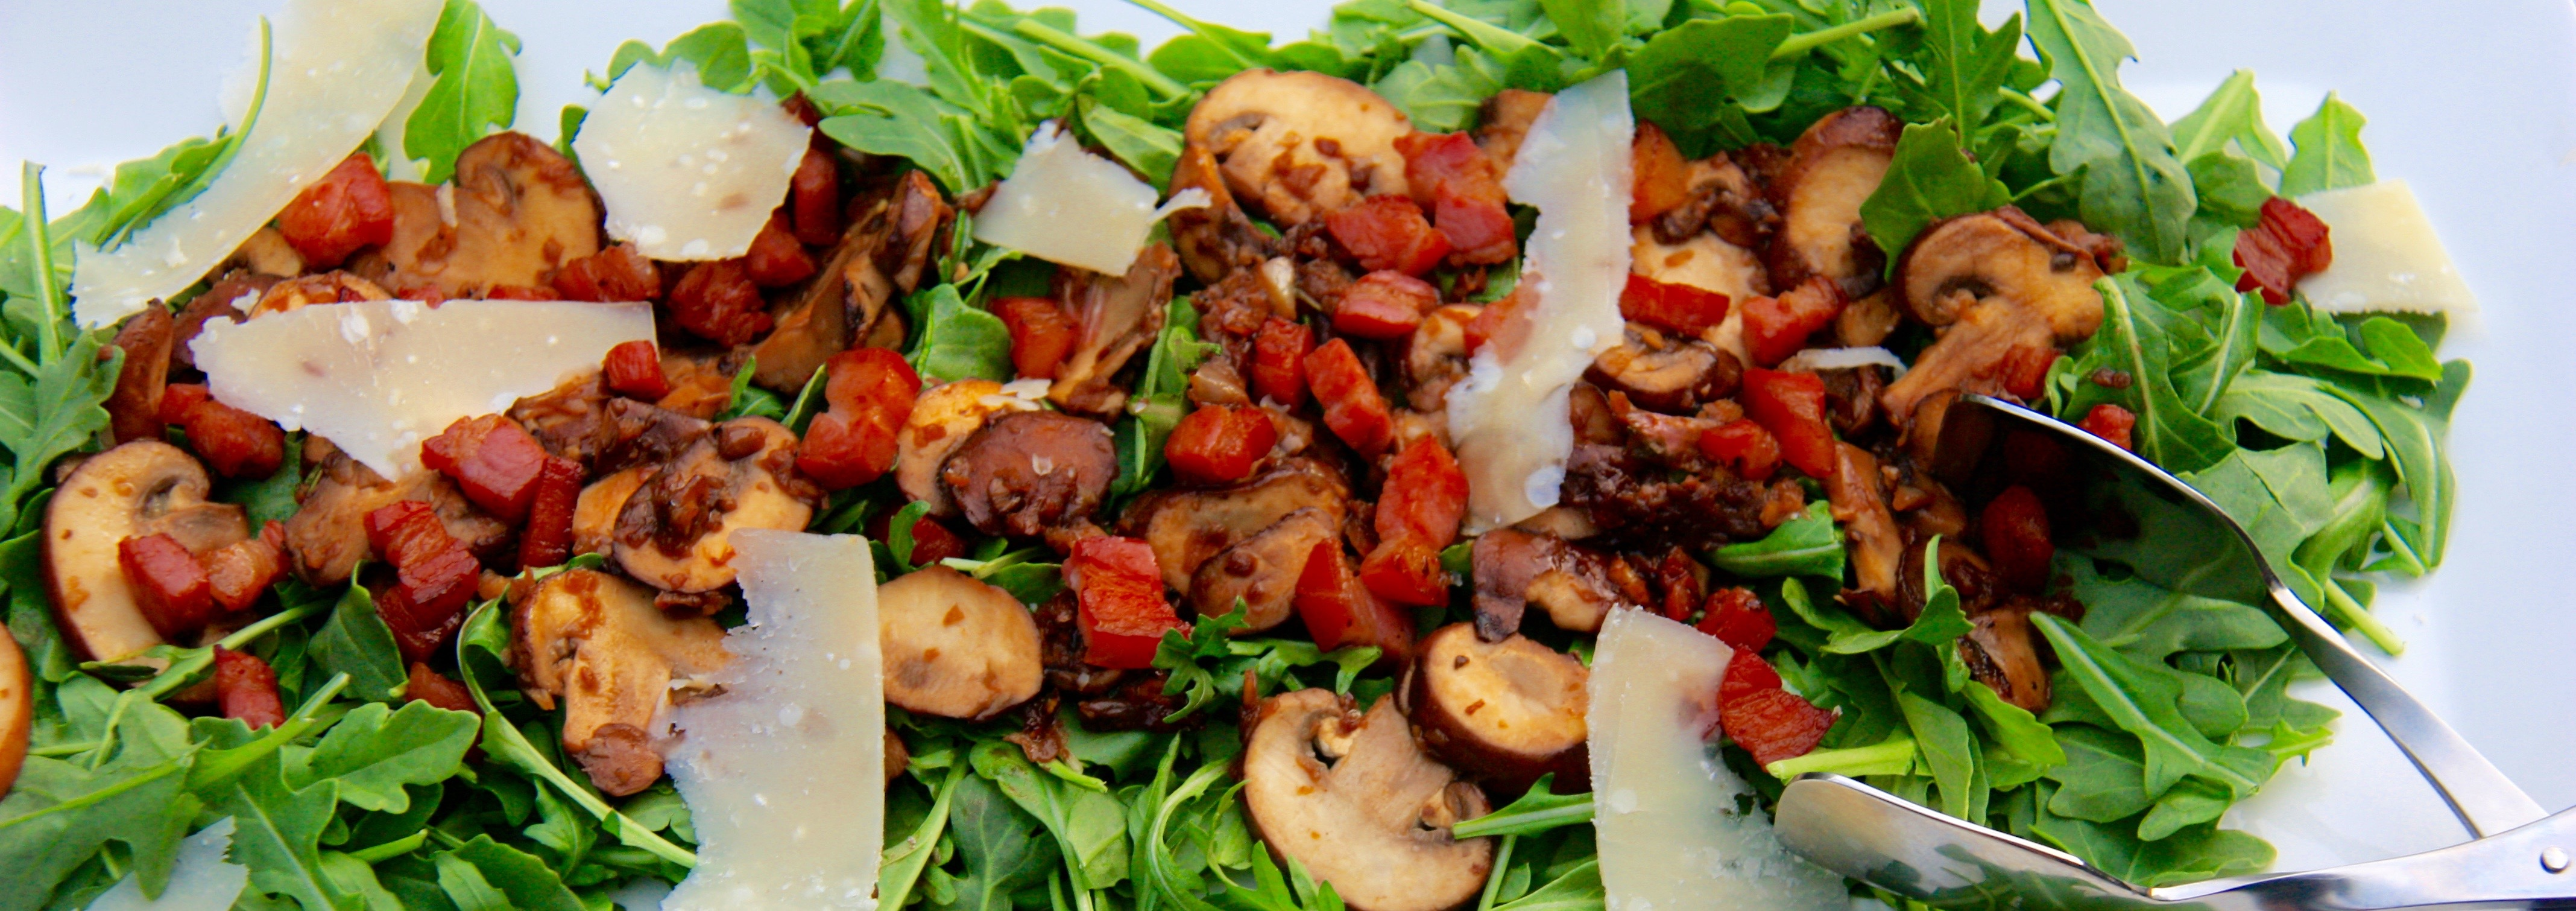 Warm Mushroom and Bacon Salad